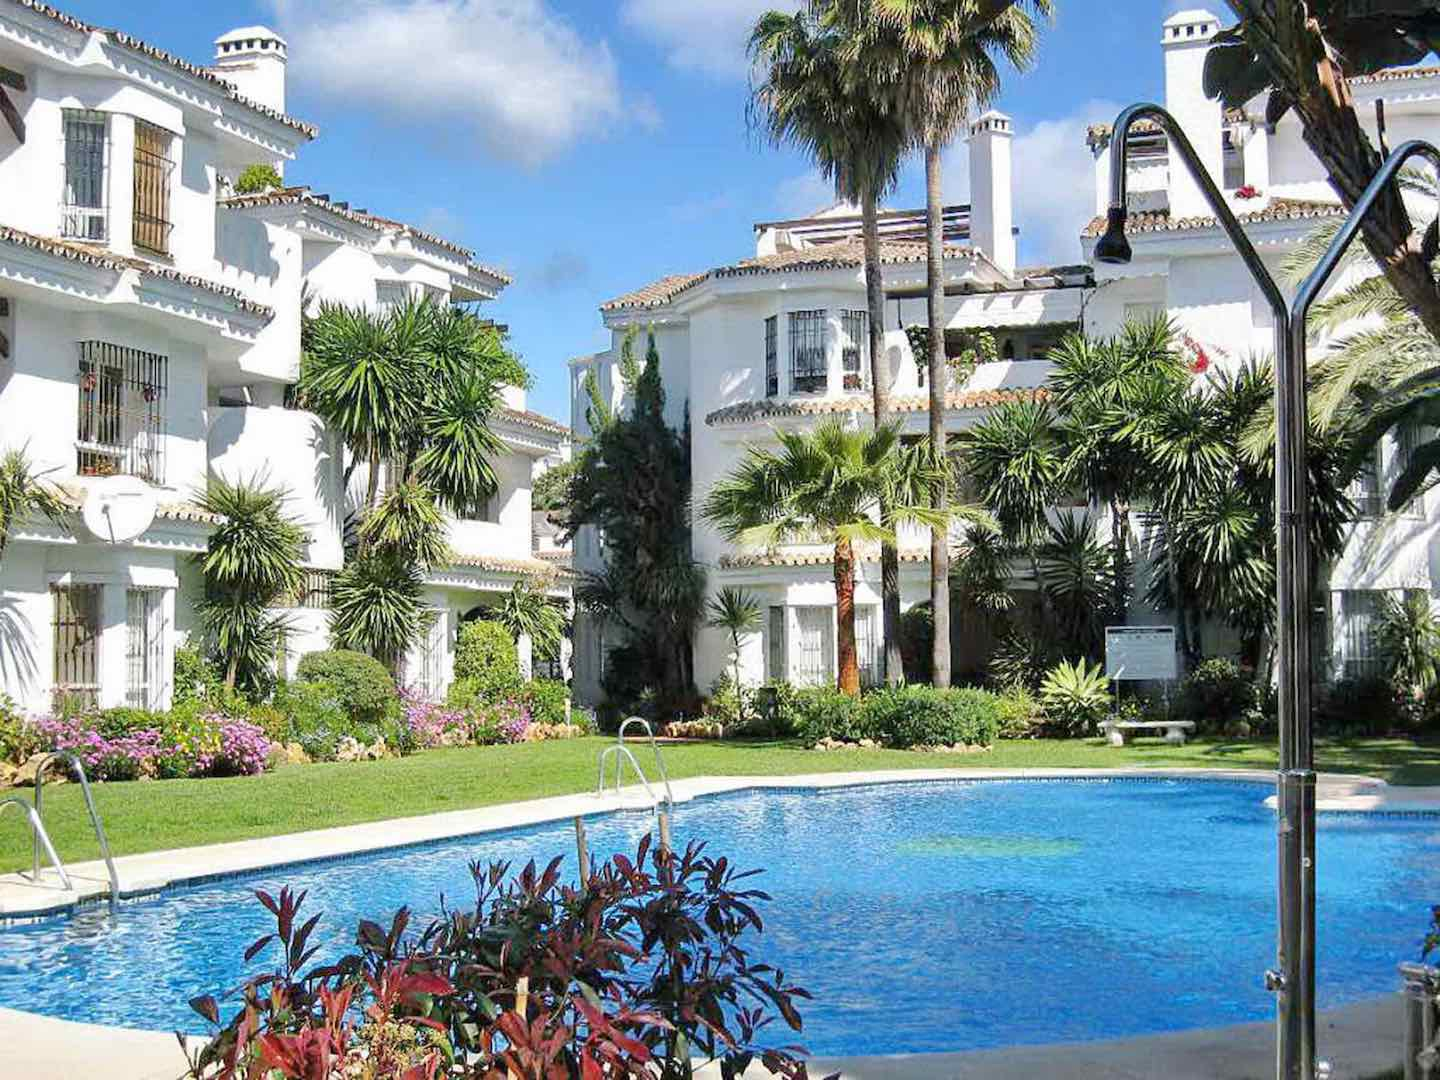 Golf packages from Vacation Marbella unveiled